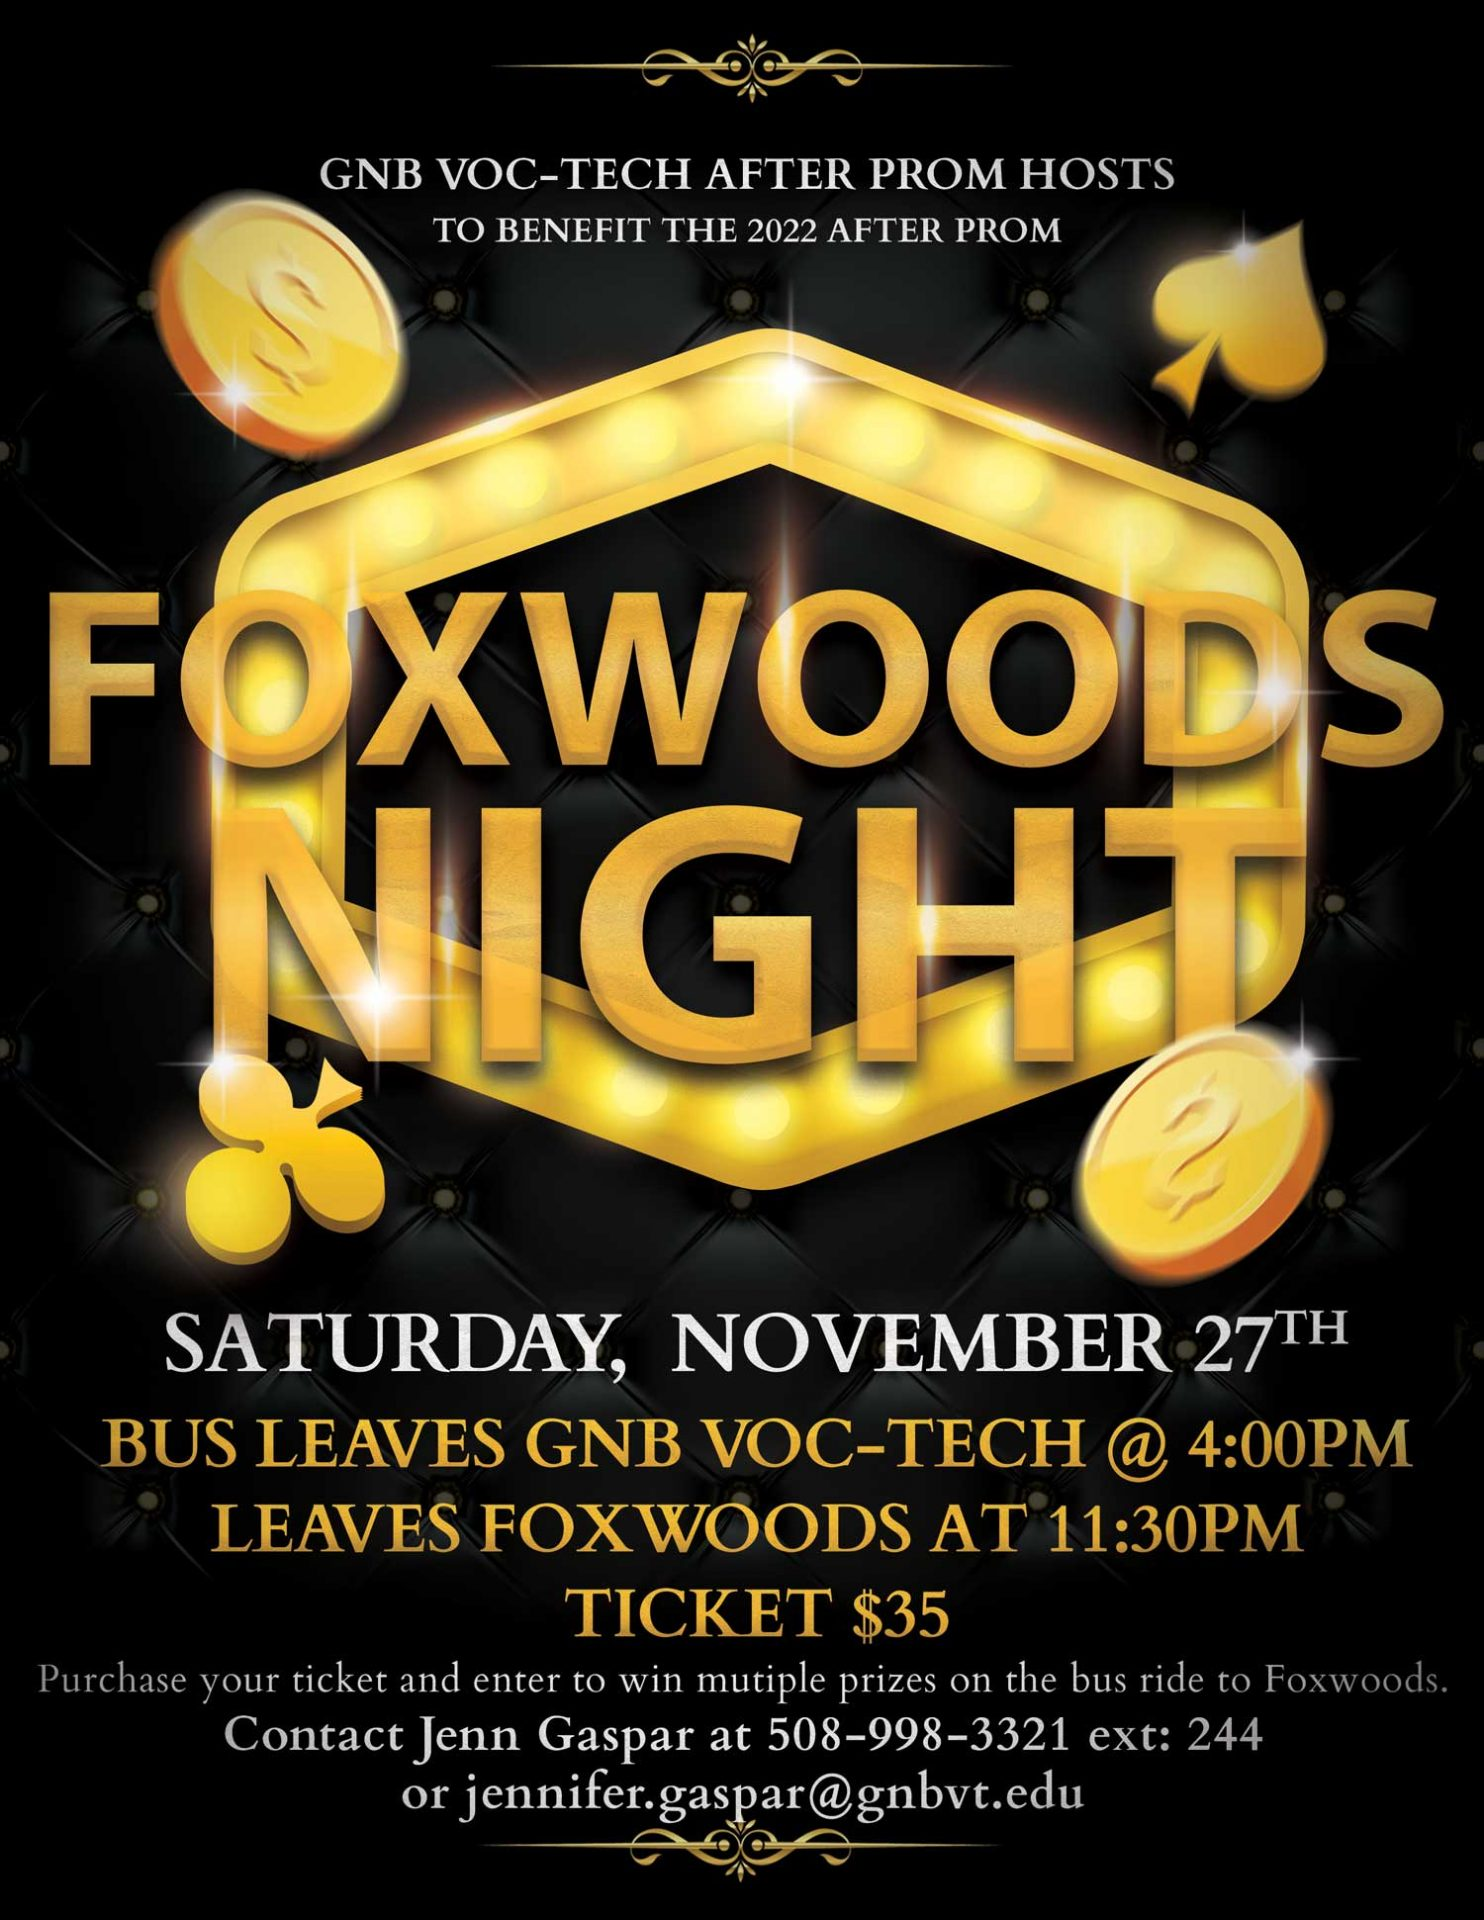 Foxwoods Night Image and information